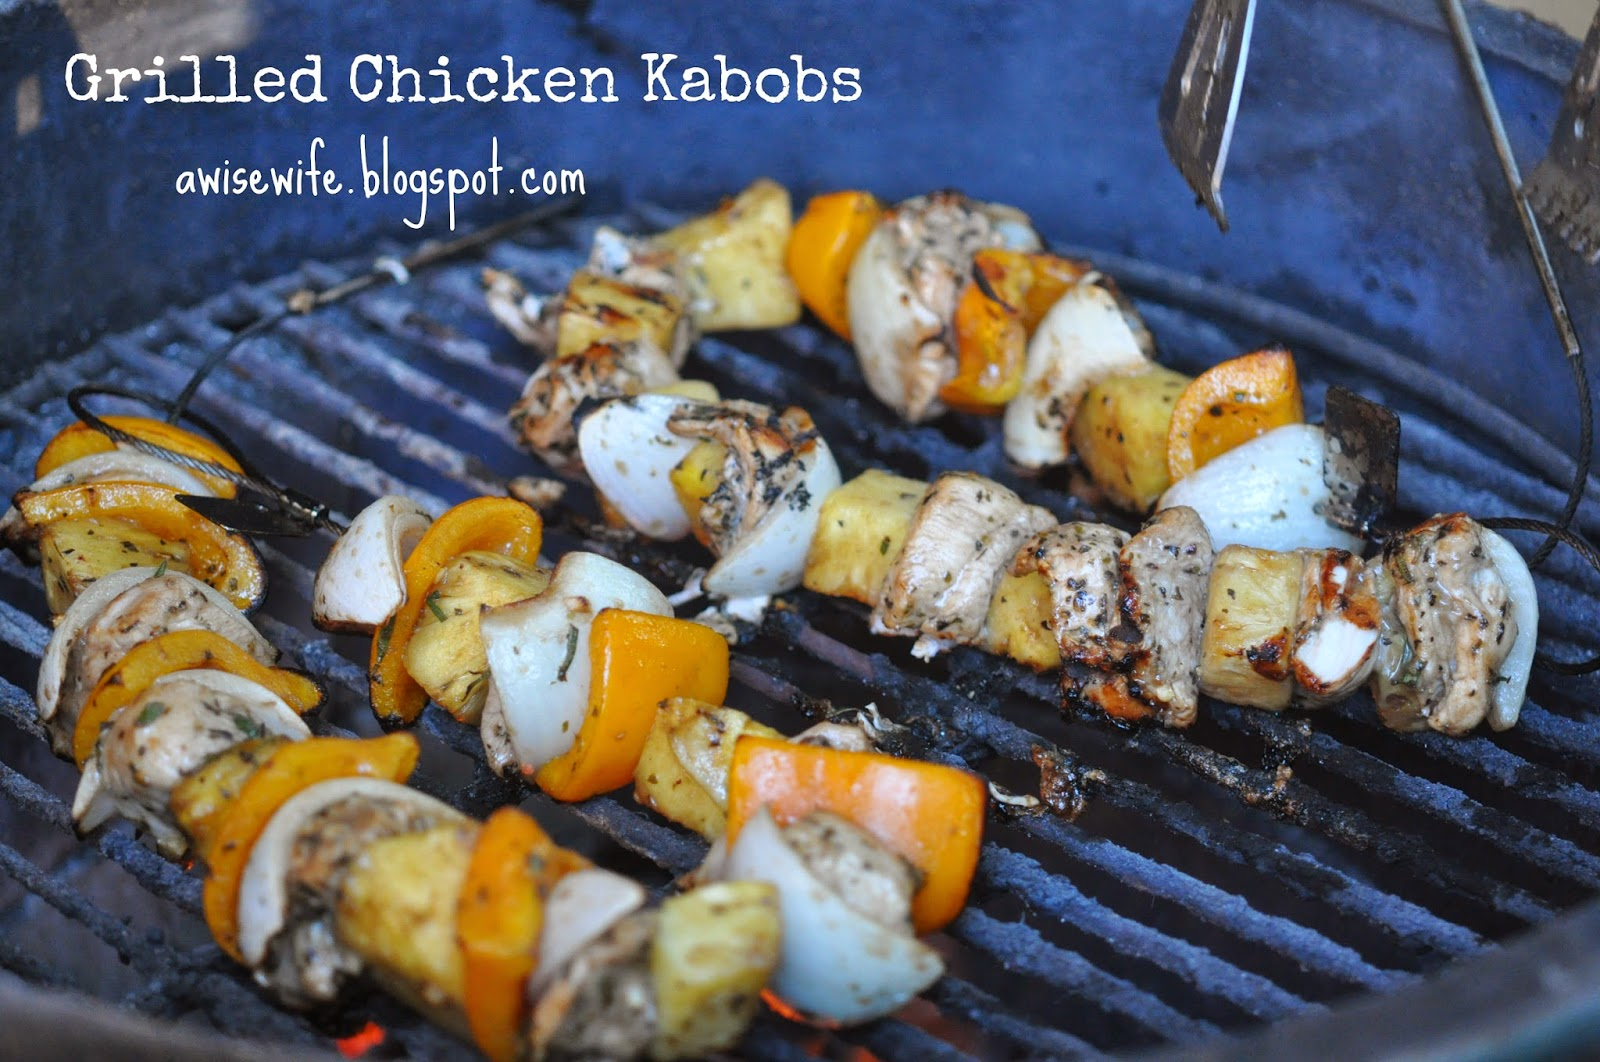 Life of a Wise Wife : Grilled Chicken Kabobs